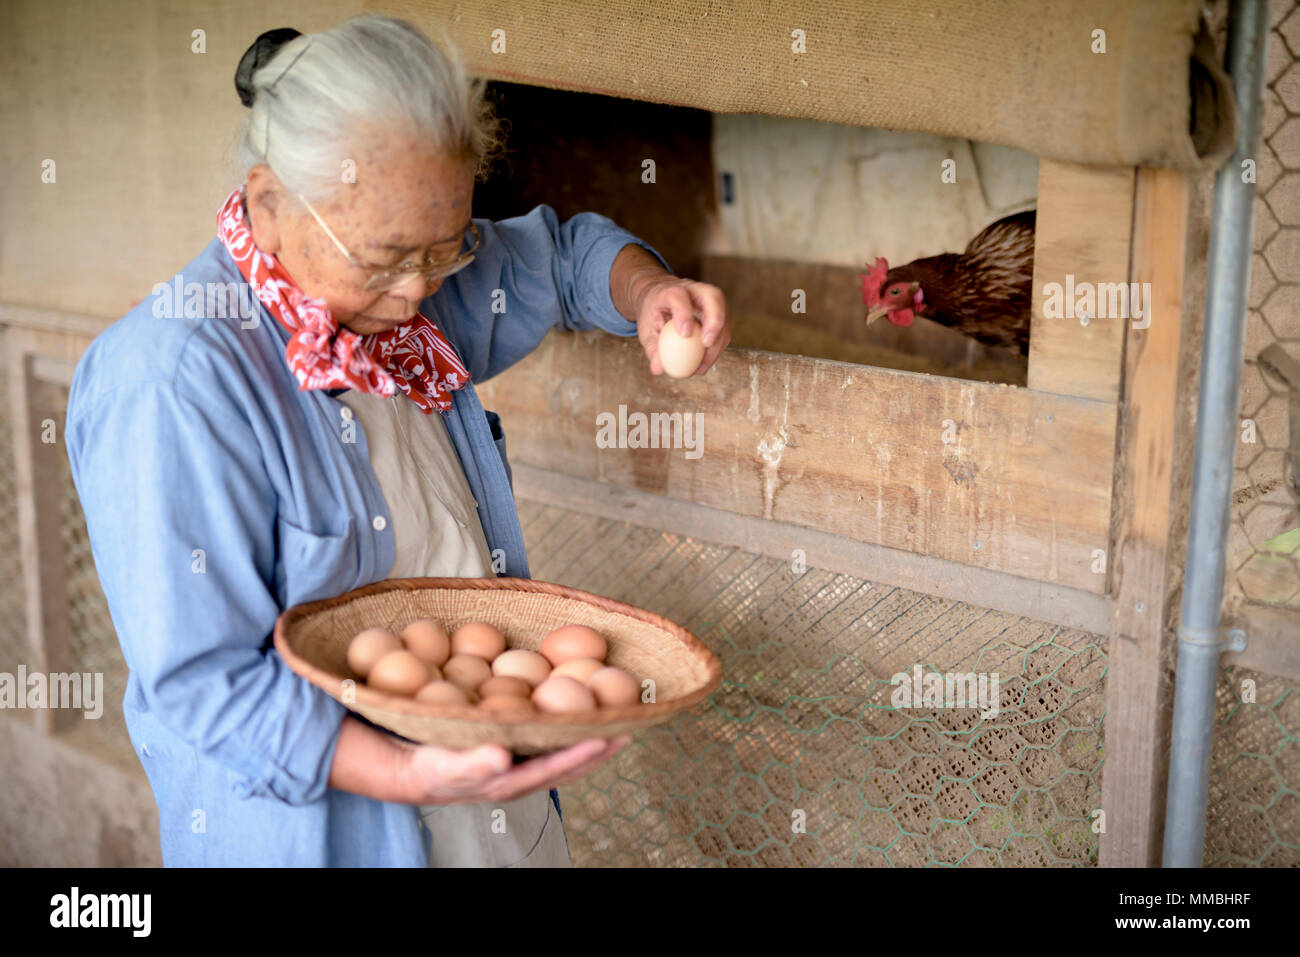 Elderly woman with grey hair standing in a chicken house, holding basket, collecting fresh eggs. - Stock Image